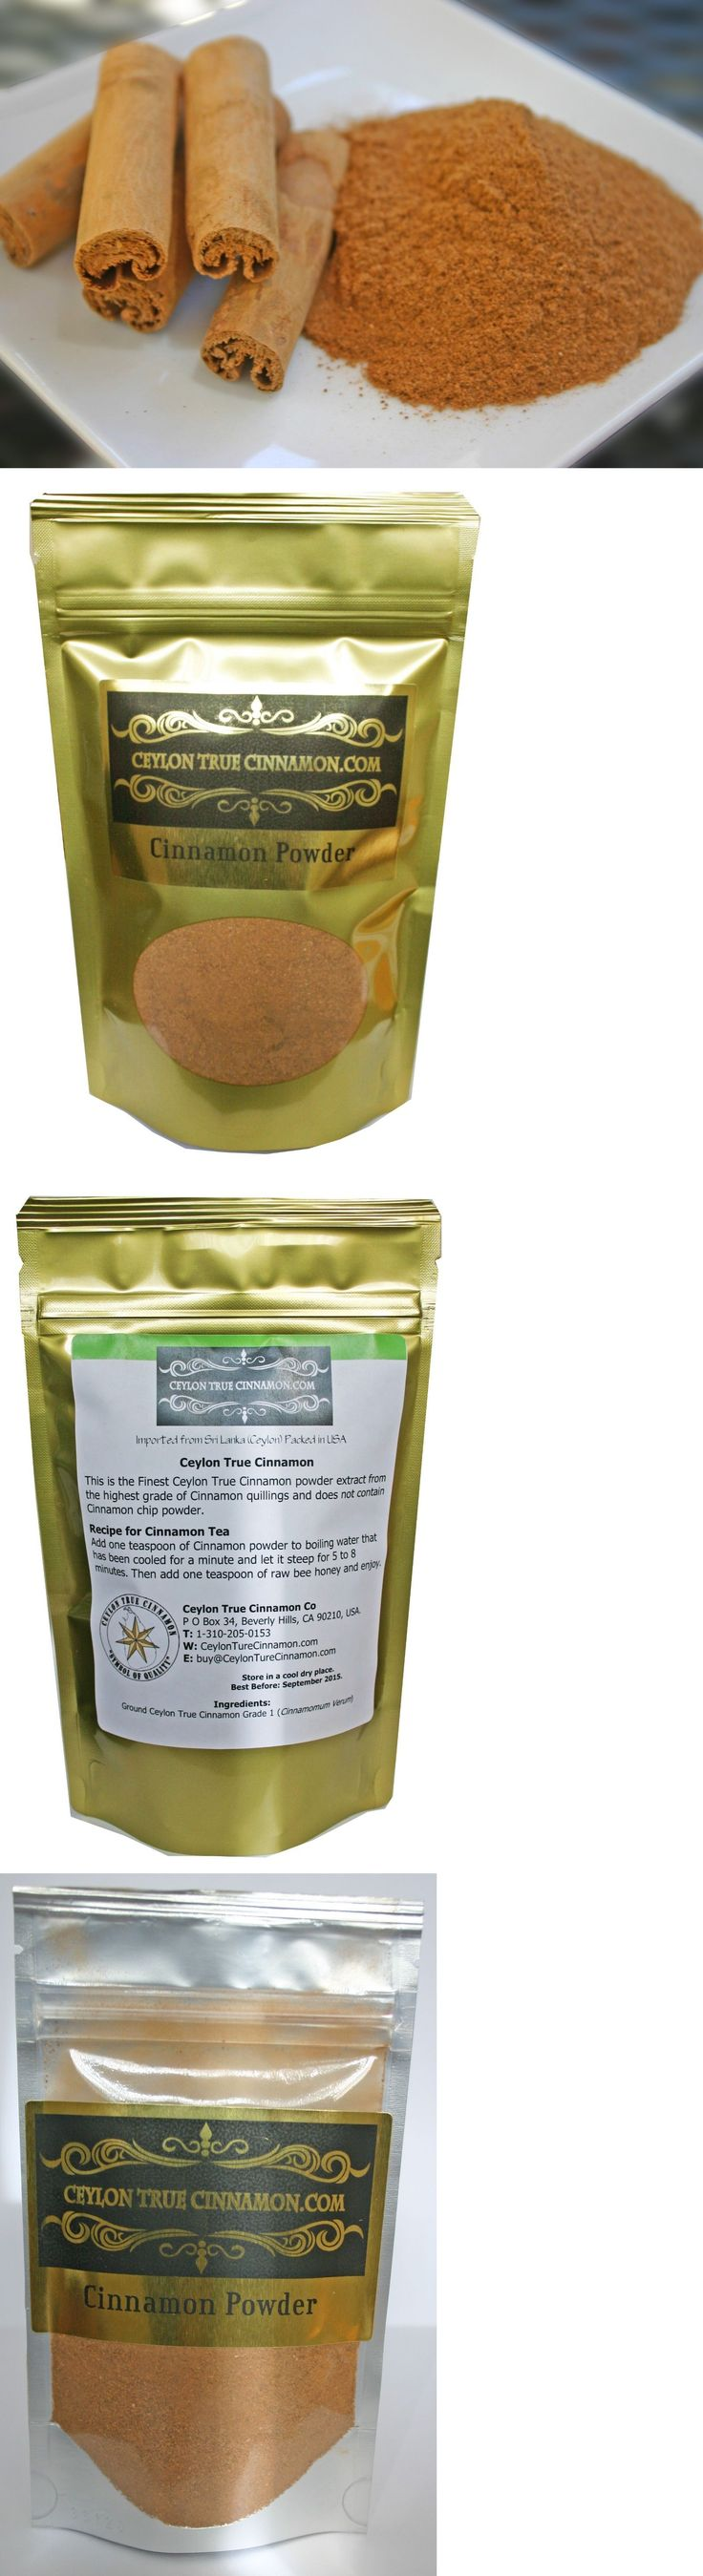 Spices Seasonings and Extracts 14314: Ceylon True Cinnamon Powder 1-2-4-8-16Oz And 2Lbs - 5Lbs - Organically Grown -> BUY IT NOW ONLY: $74.95 on eBay!